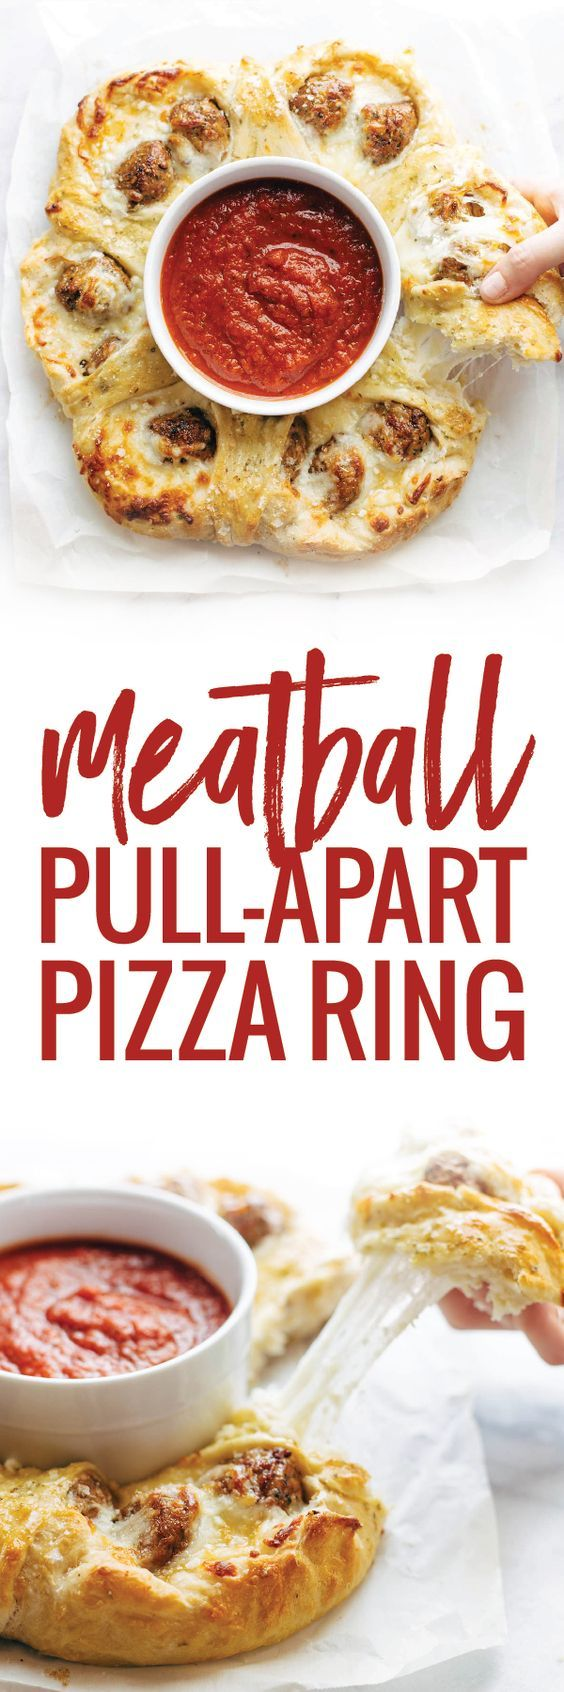 Cheesy Meatball Pull-Apart Pizza Ring! 5 ingredients - SO YUMMY and so fun for parties! | pinchofyum.com